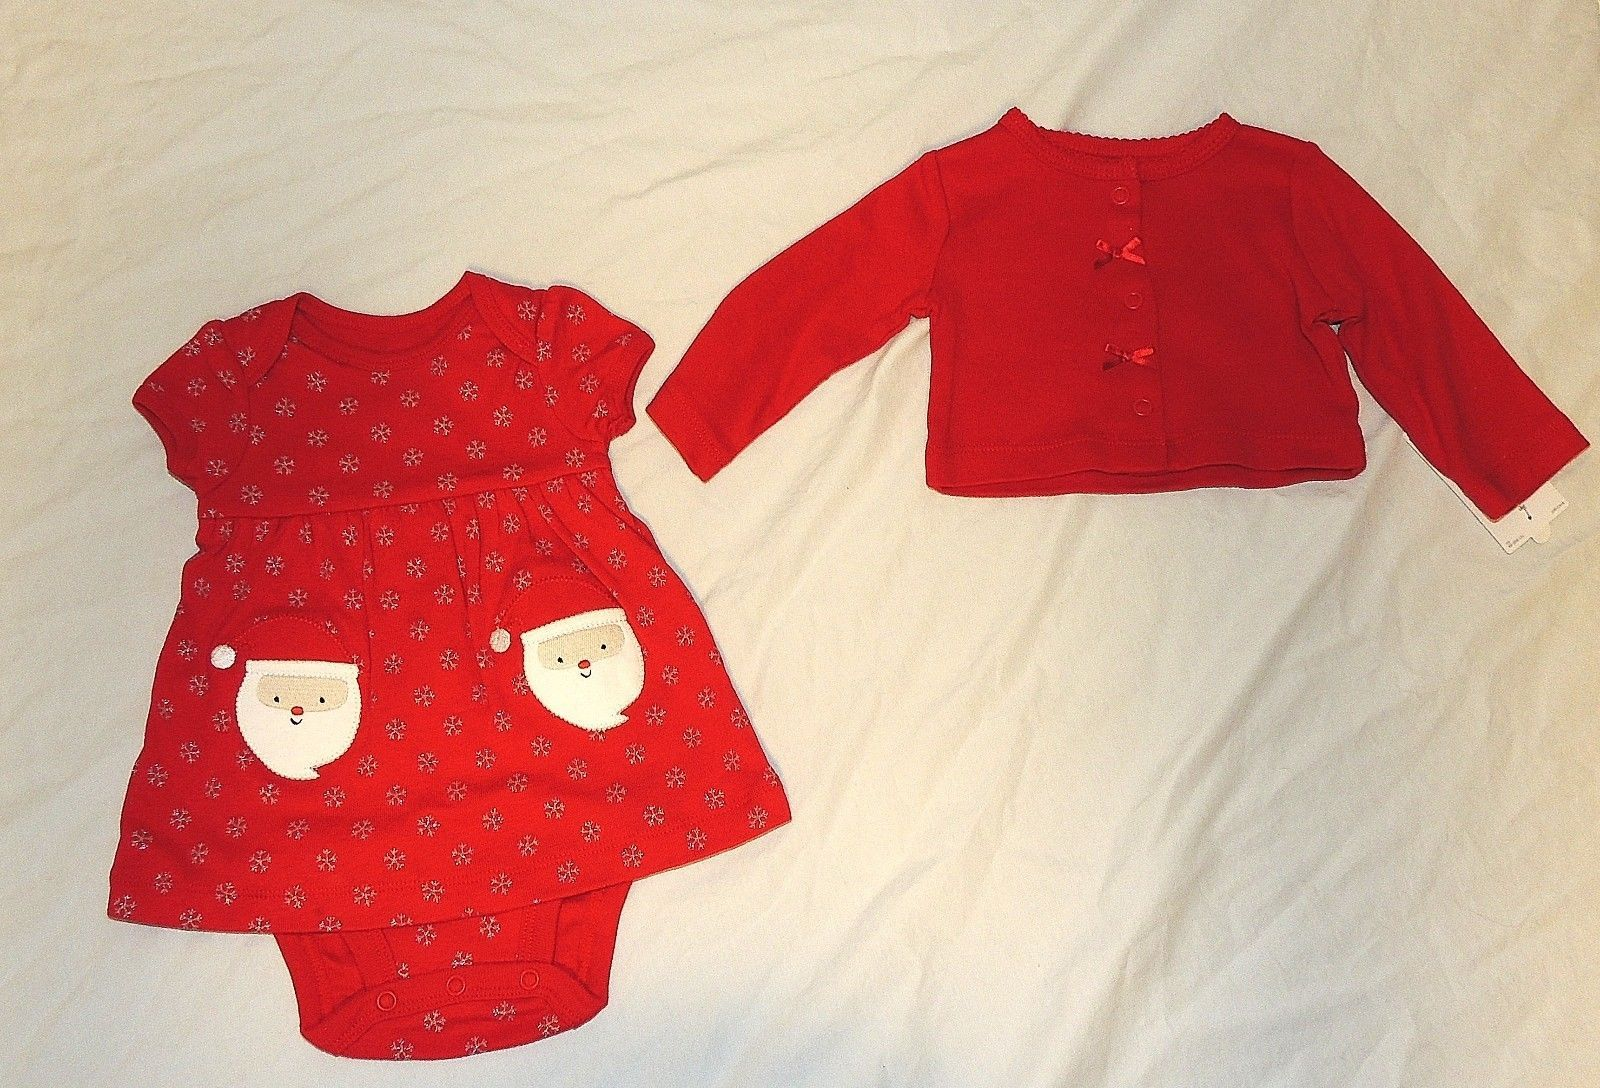 new carters baby girl first christmas outfit and 38 similar items